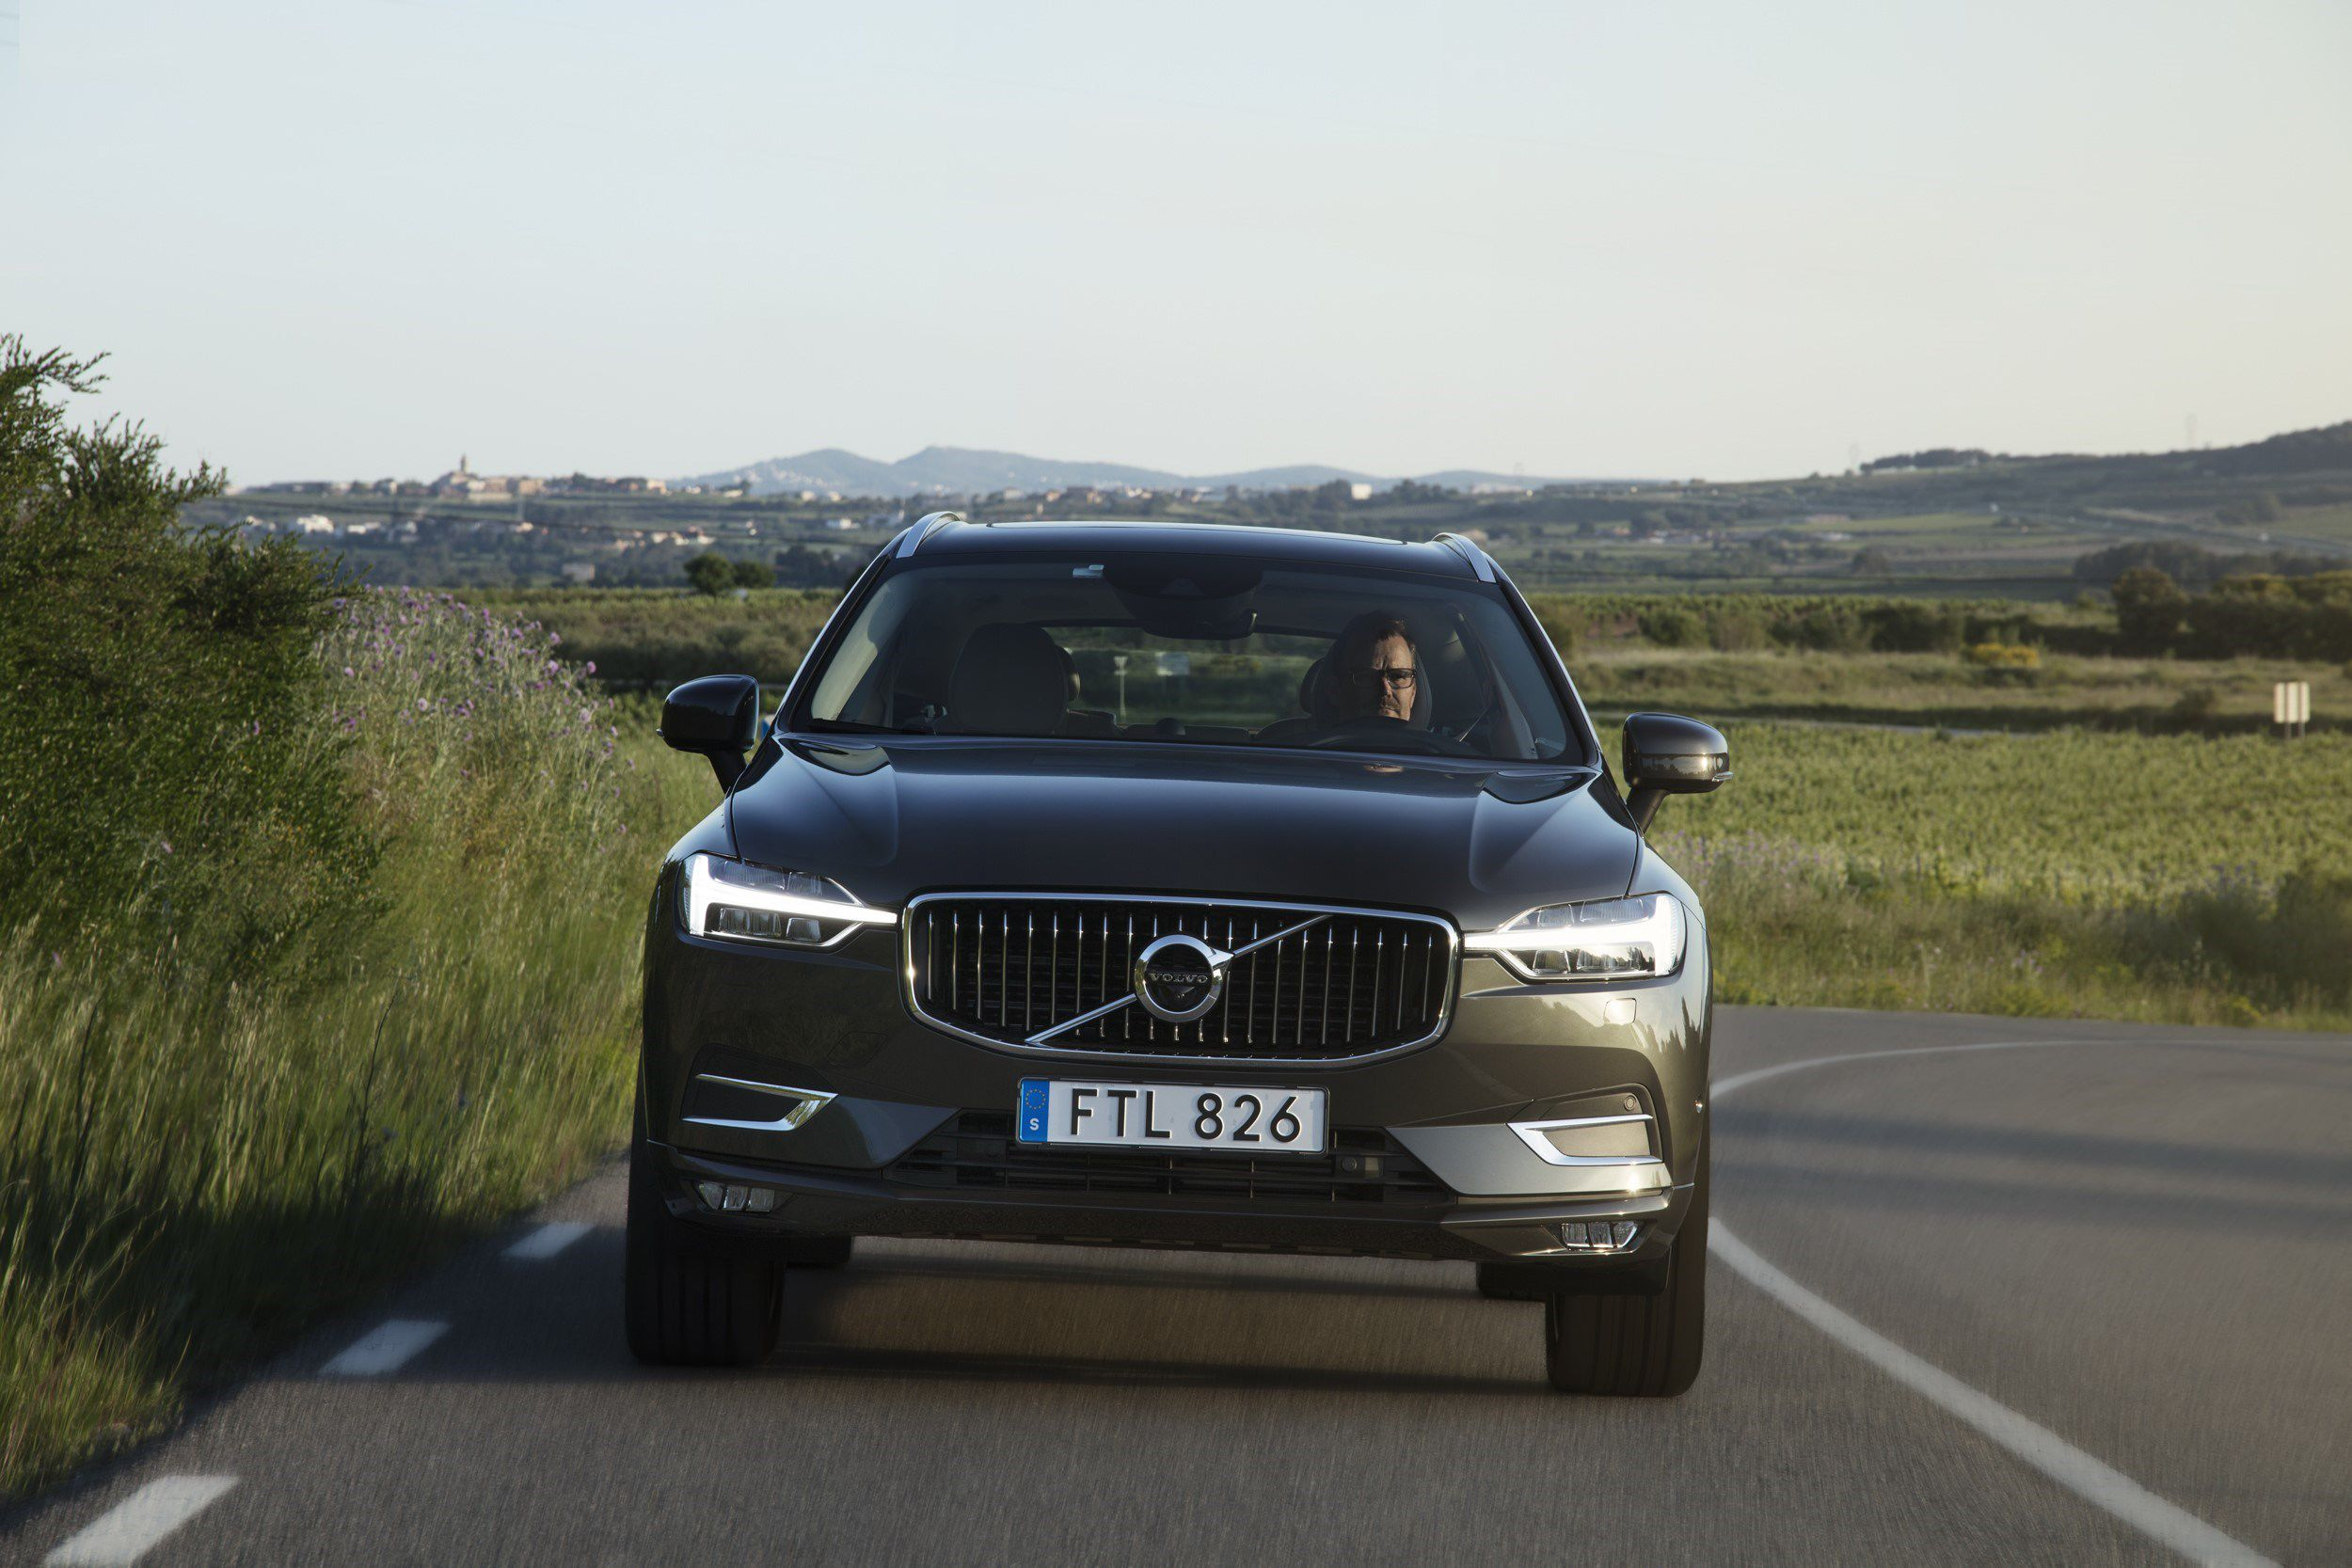 Volvo Xc60 The New Volvo Xc60 One Of The Safest Cars Ever Made Is Fully Loaded With New Technology Steer Assist Has Been Added To T Volvo Xc60 Volvo Cars Volvo